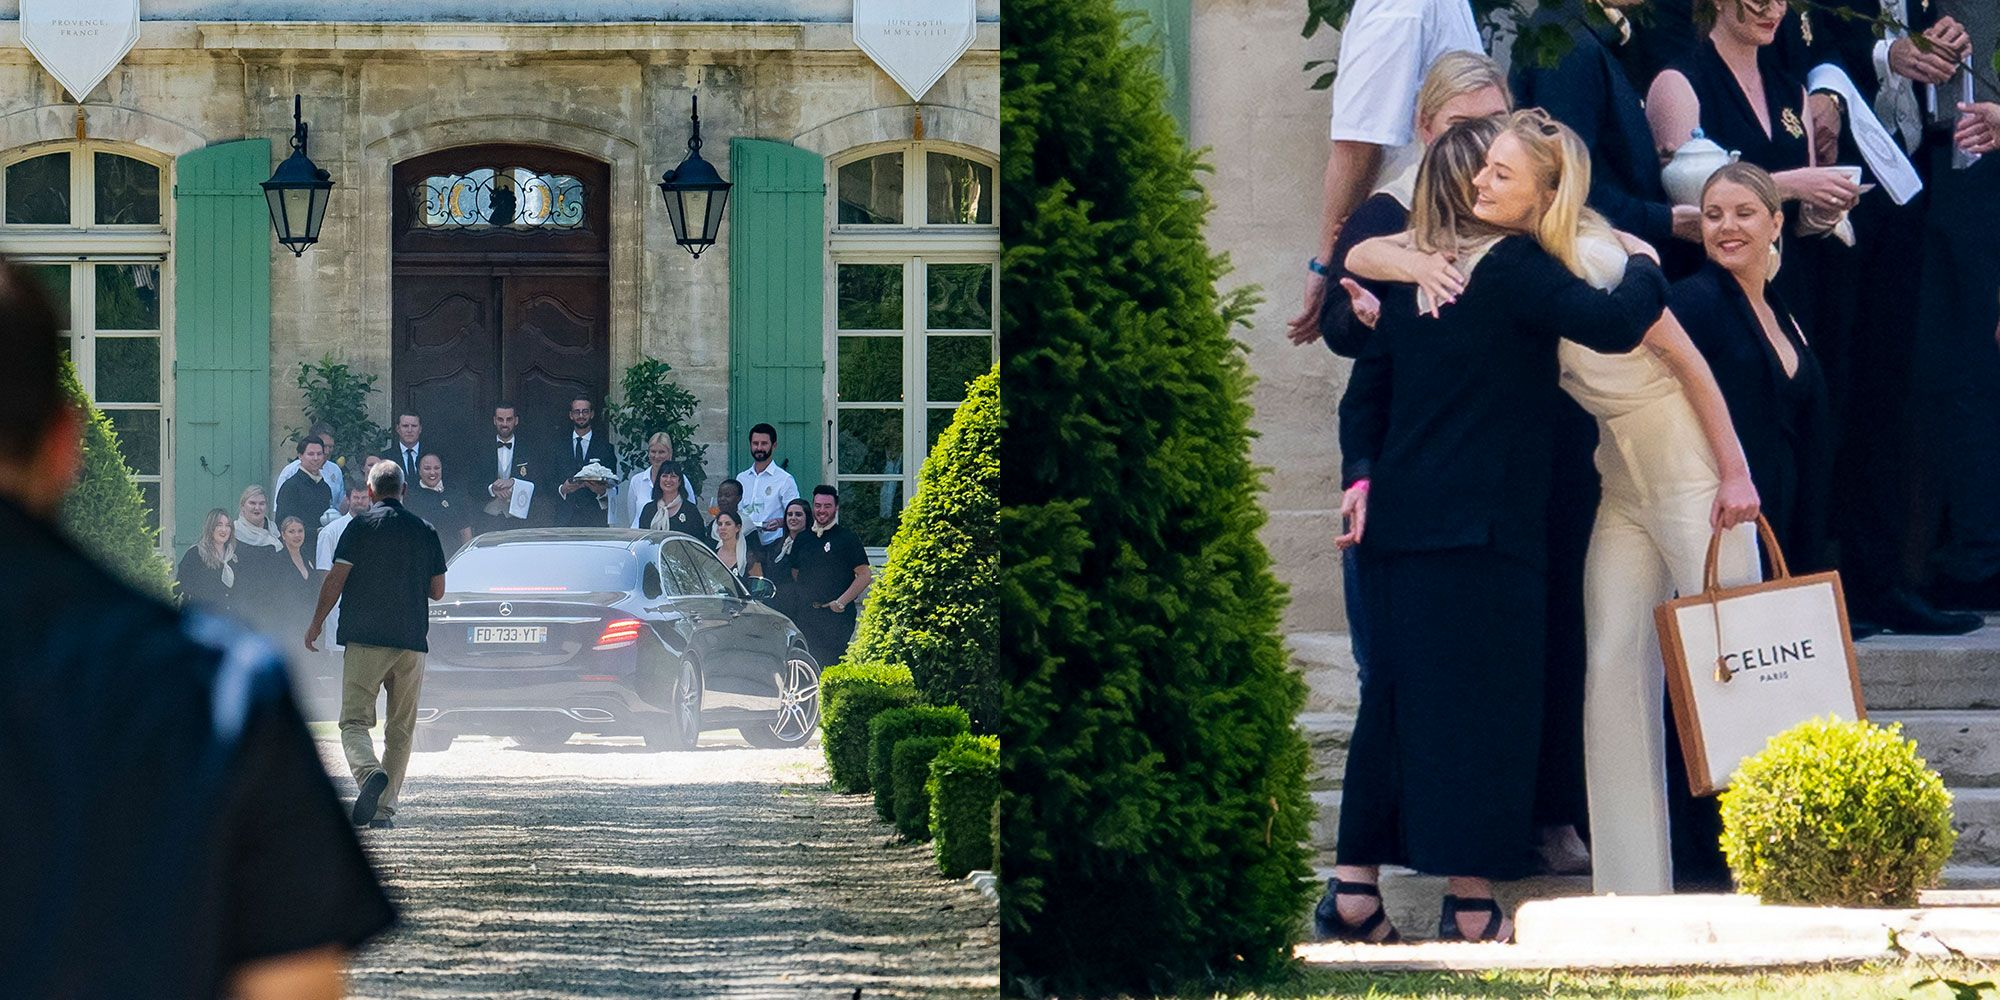 Sophie Turner and Joe Jonas Arrive at the Highly Instagrammable French Château Where They're Getting Married